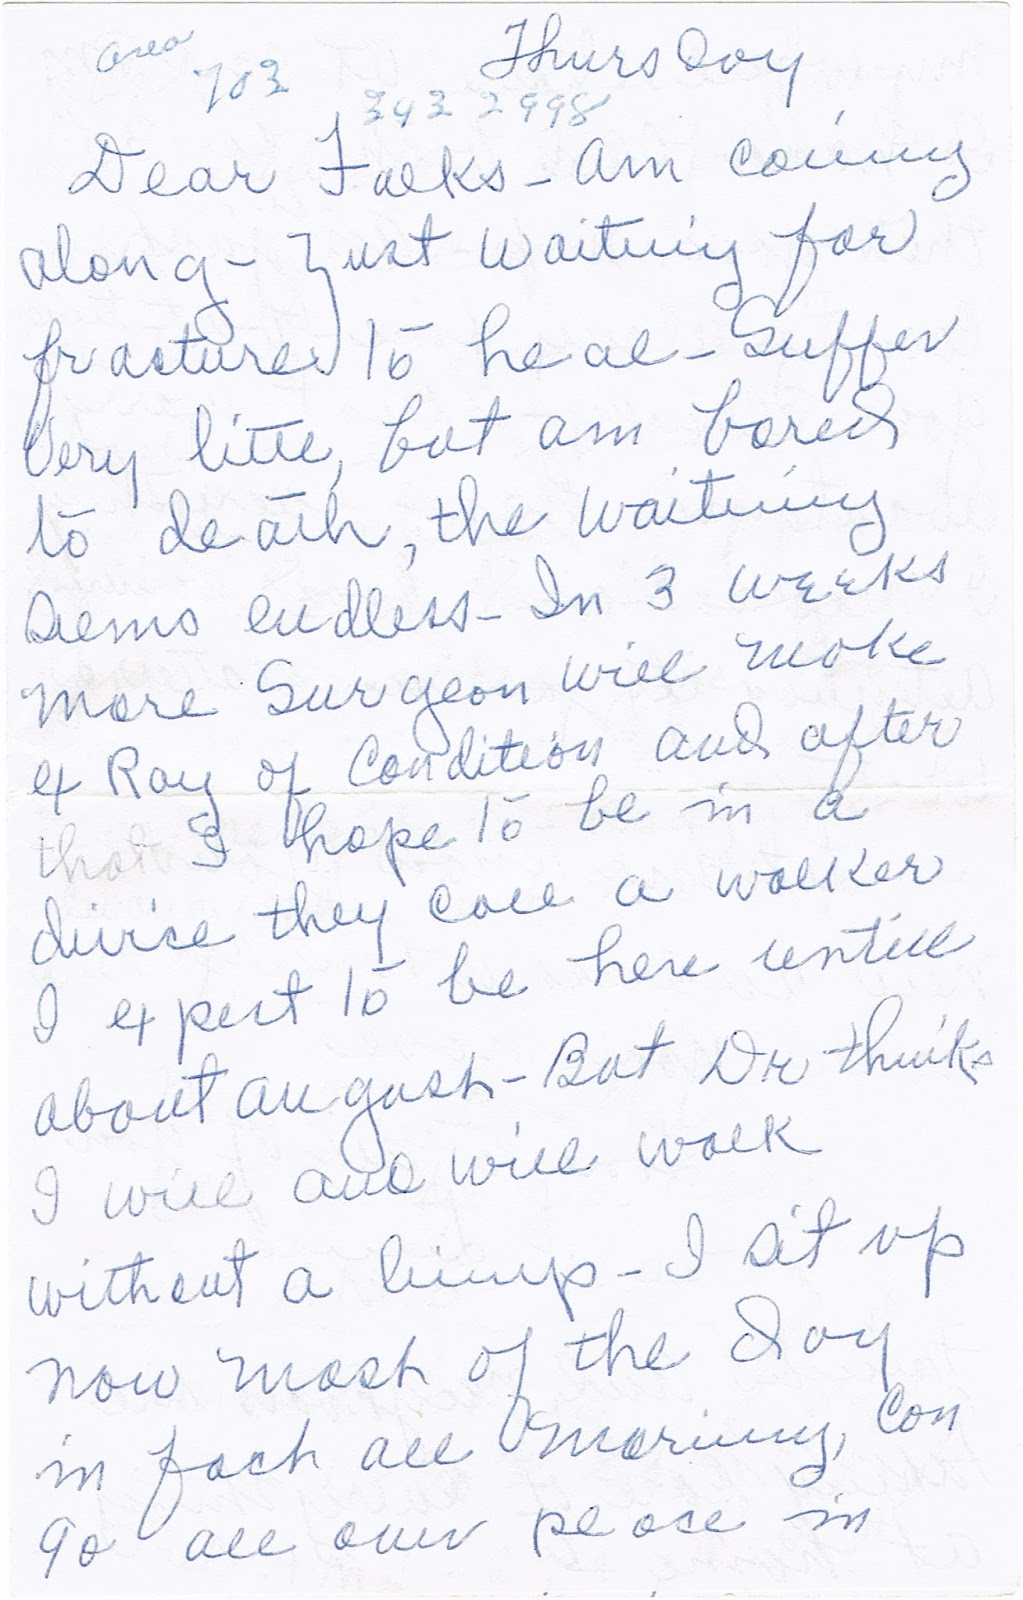 letter from retired former teacher to her brother describing her recuperation from a fall causing fracture to her hip